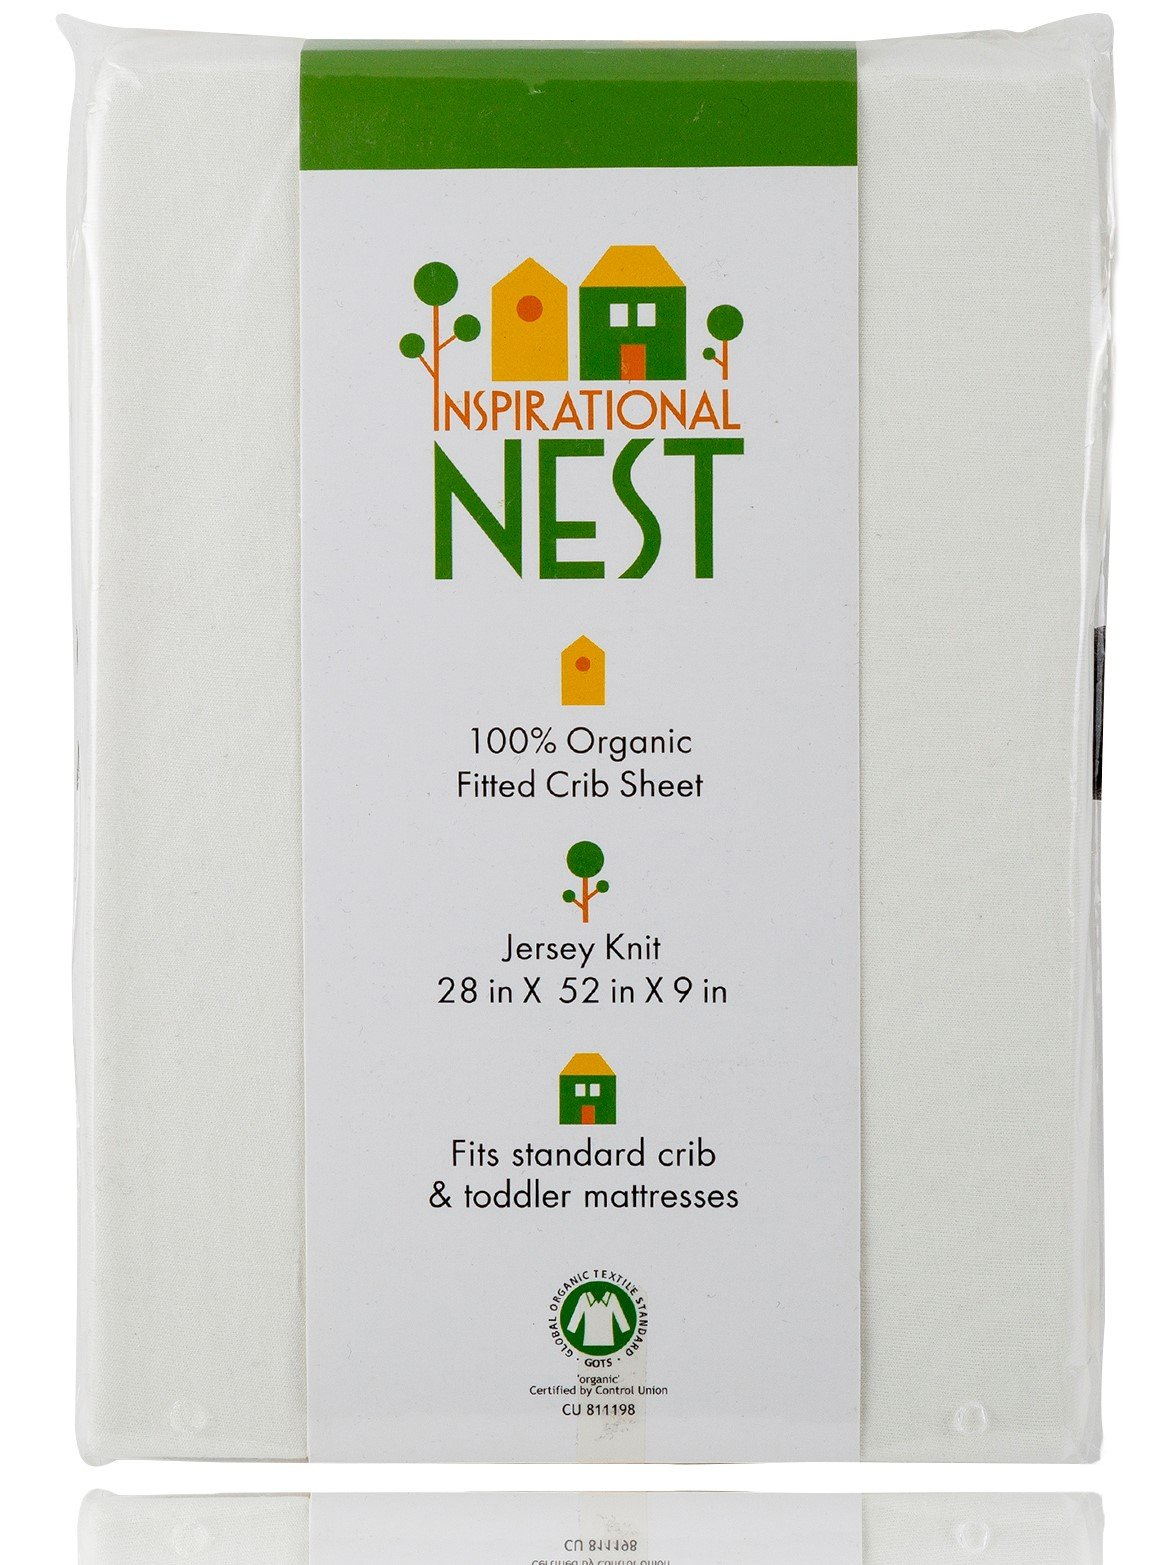 Organic Fitted Crib Sheet - GOTS Certified -100% Organic Cotton- Jersey Knit - More than Organic, Ultra-comfy, Clean and Safe Sheets (Natural/Ecru/Off White)